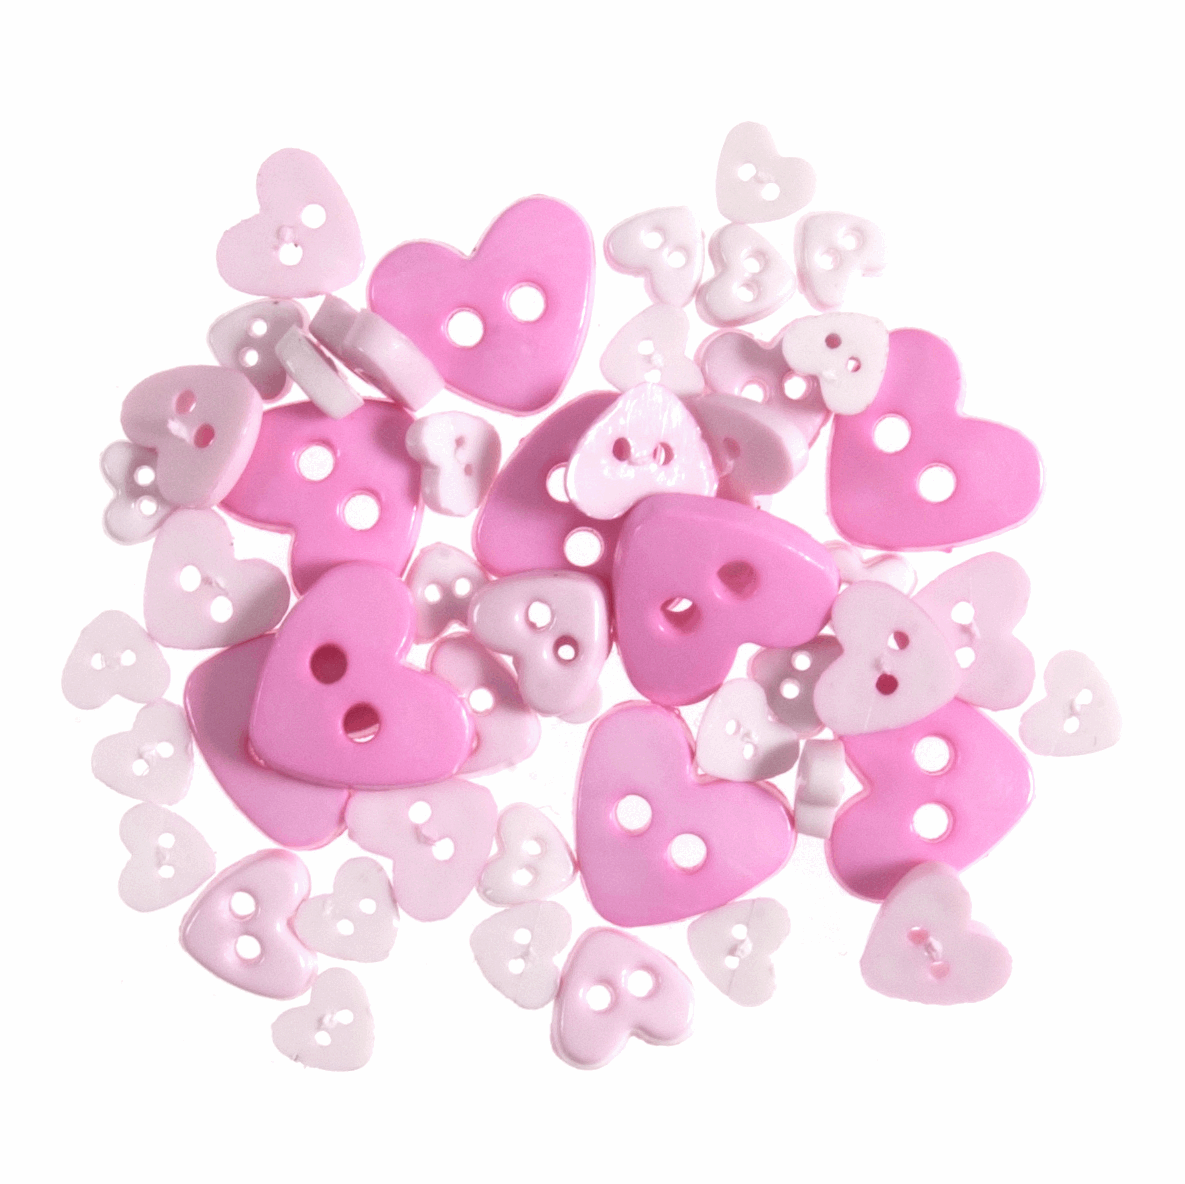 Picture of Mini Craft Buttons: Hearts: Pink: 2.5g